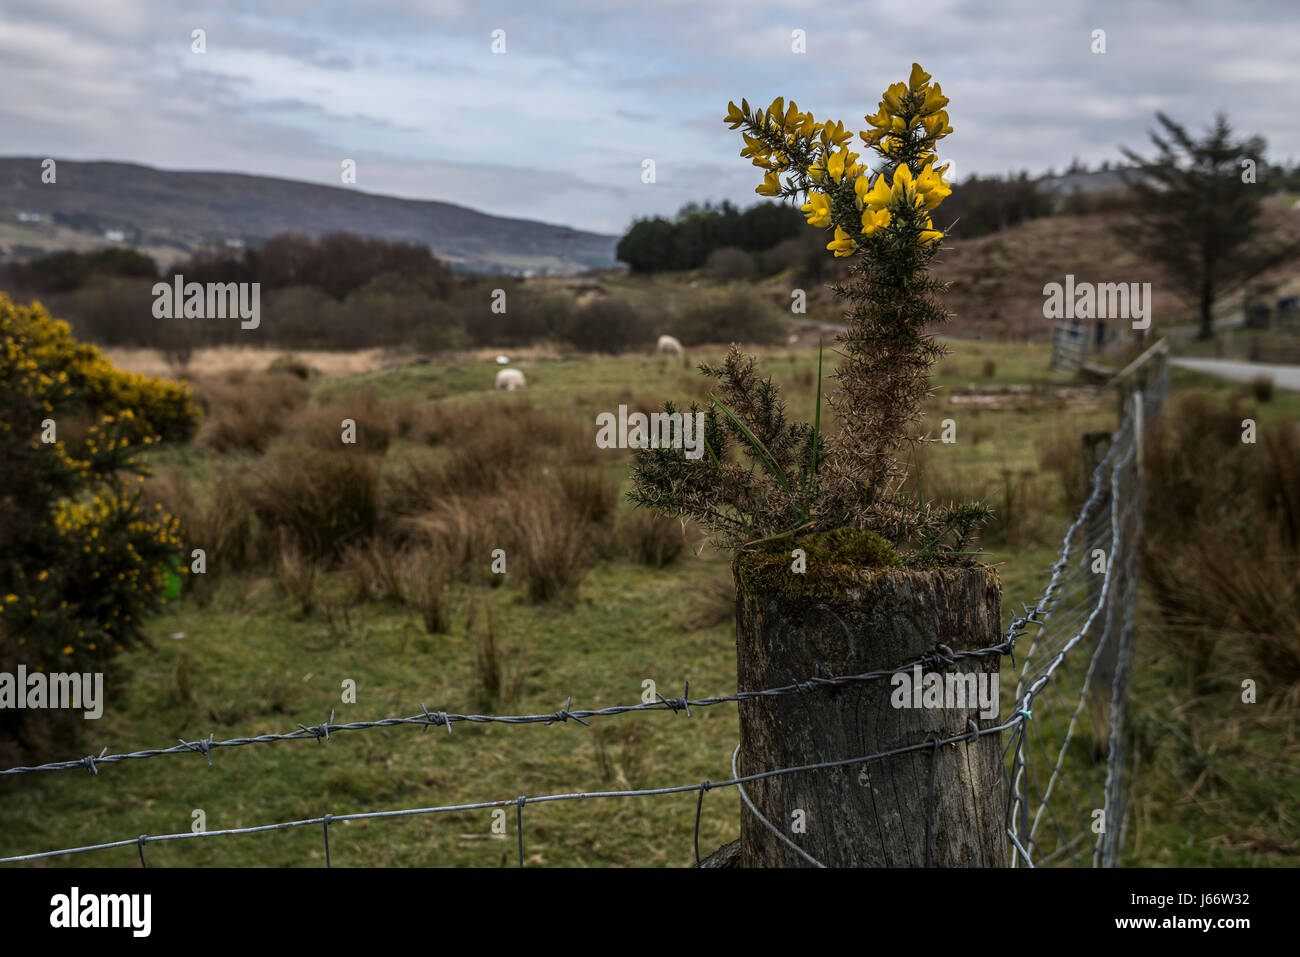 Gorse bush seedling growing on the top of a fence post at Glendale, Isle of Skye, Scotland. - Stock Image